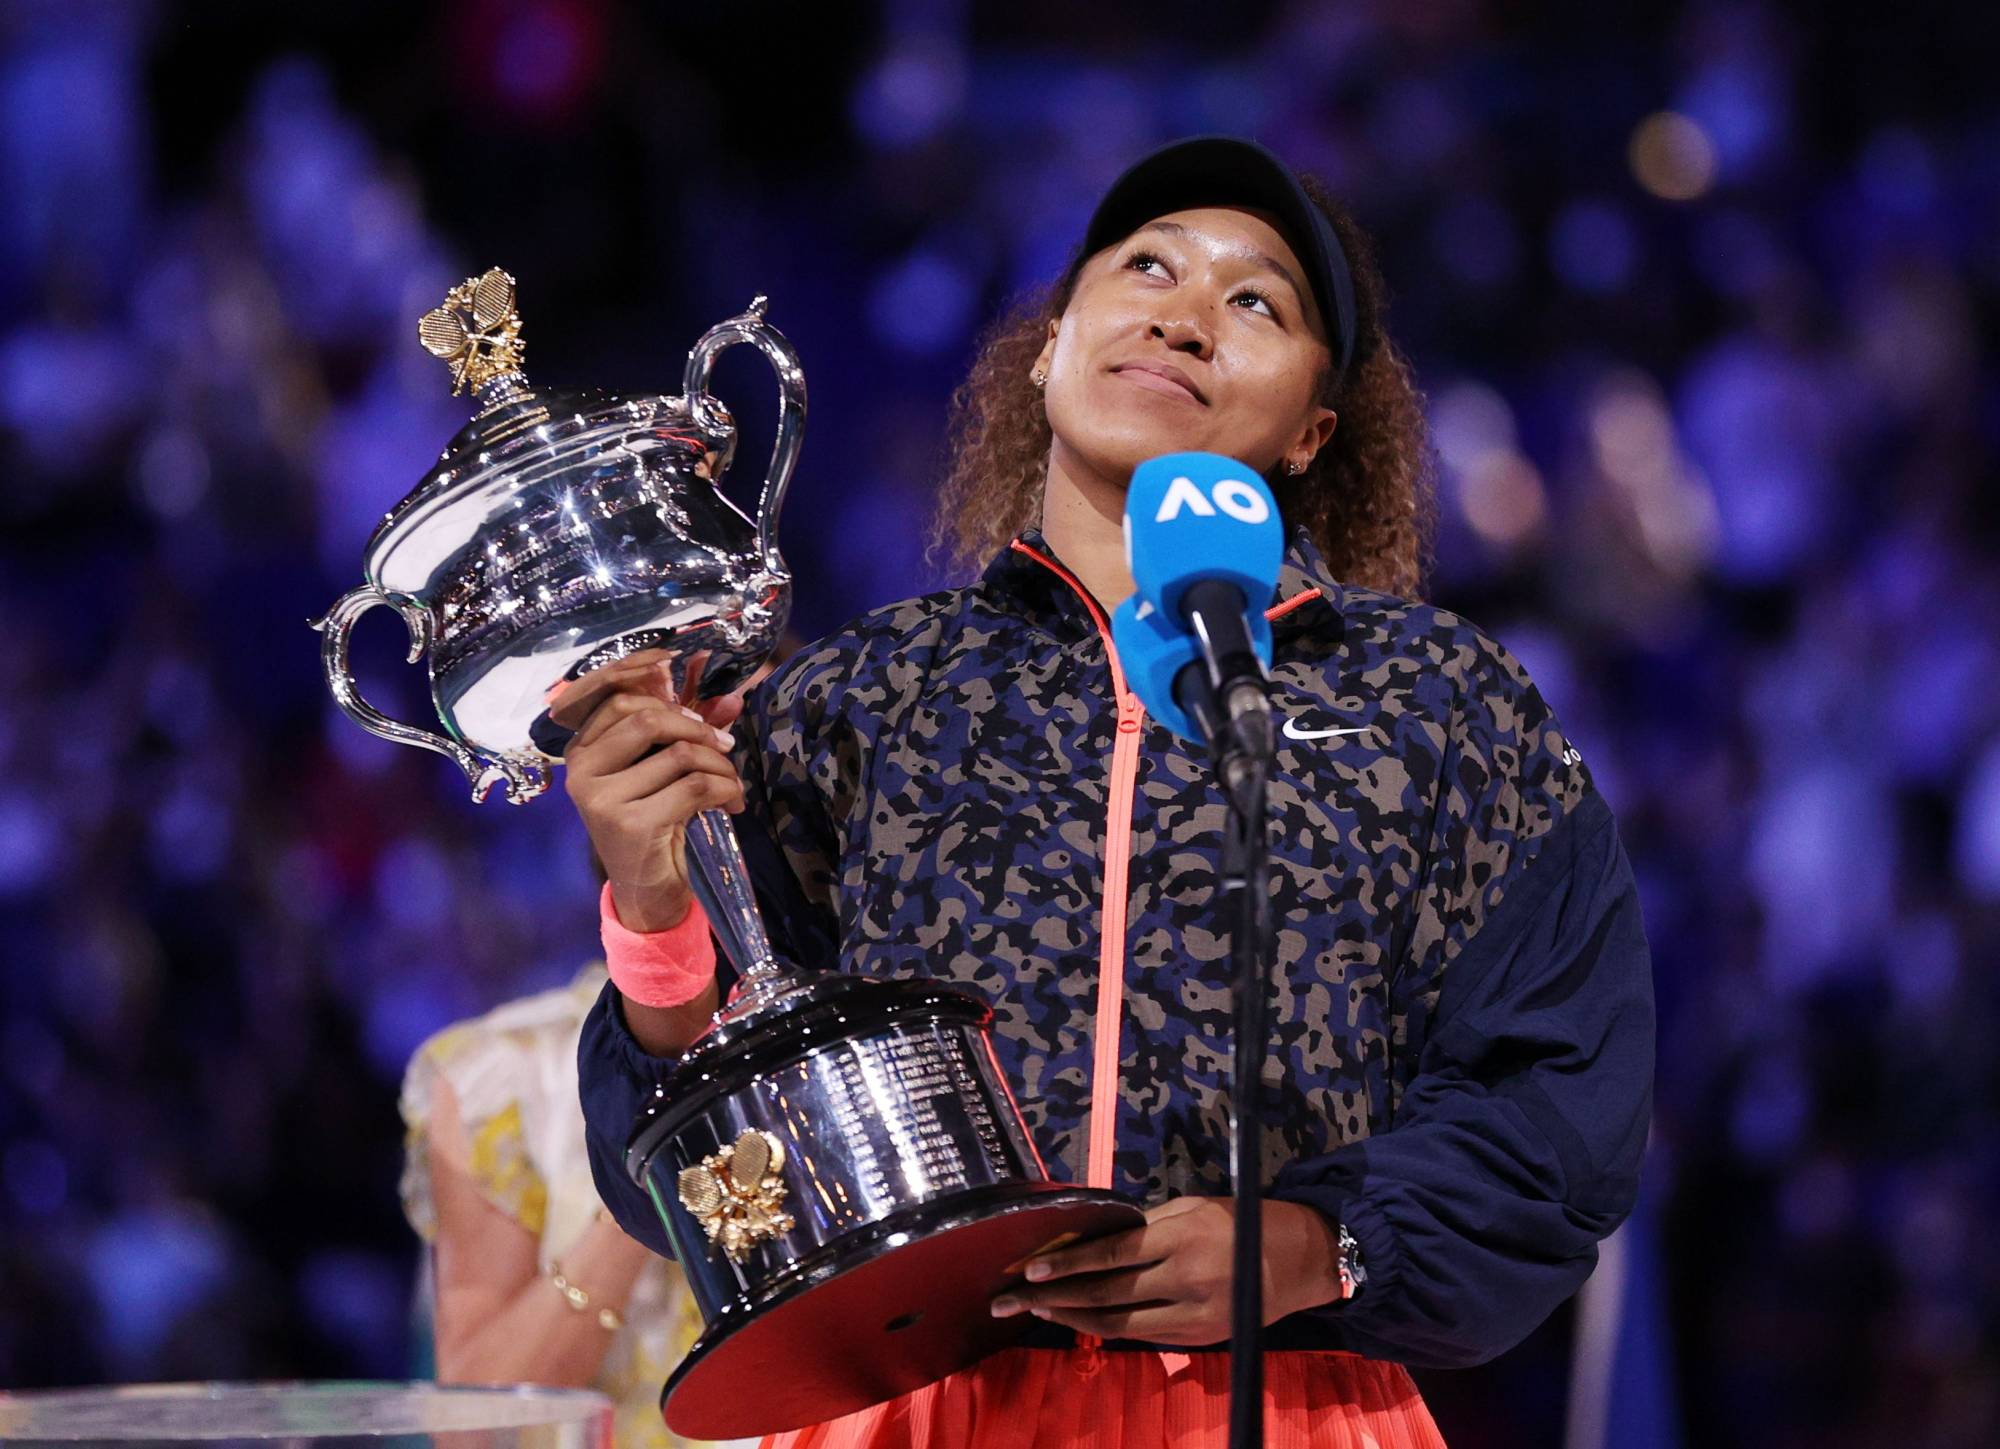 Naomi Osaka holds the trophy during an on-court interview after winning the Australian Open on Saturday in Melbourne.   REUTERS